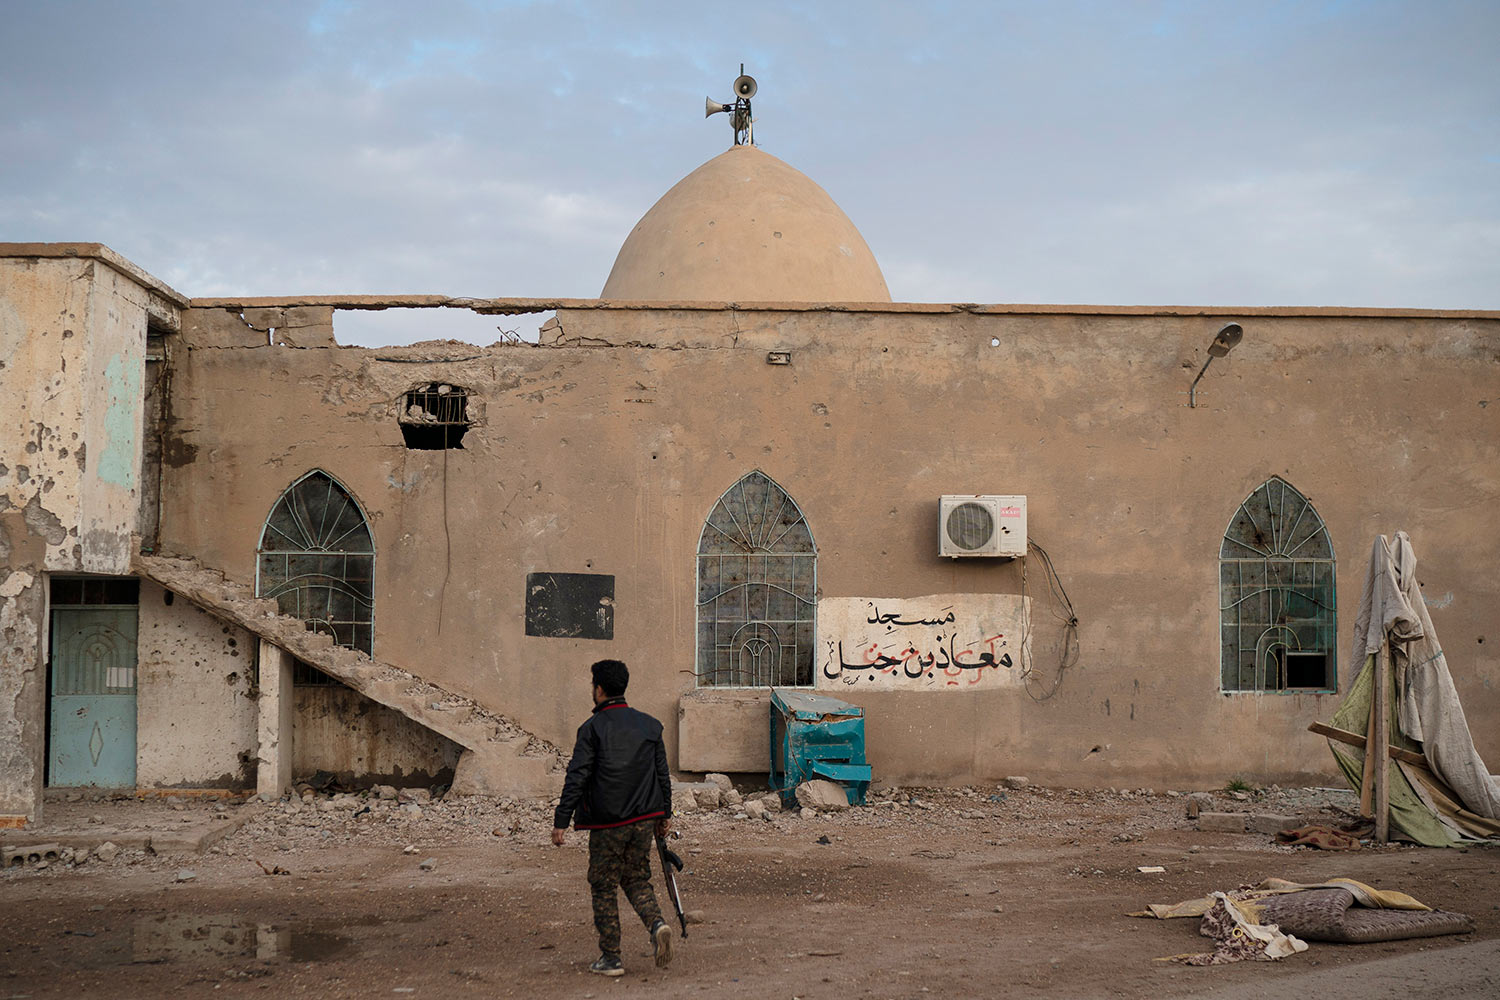 A U.S.-backed Syrian Democratic Forces (SDF) fighter walks outside a mosque in a village recently retaken from Islamic State militants near Hajin, Syria, Saturday, Feb. 16, 2019. (AP Photo/Felipe Dana)